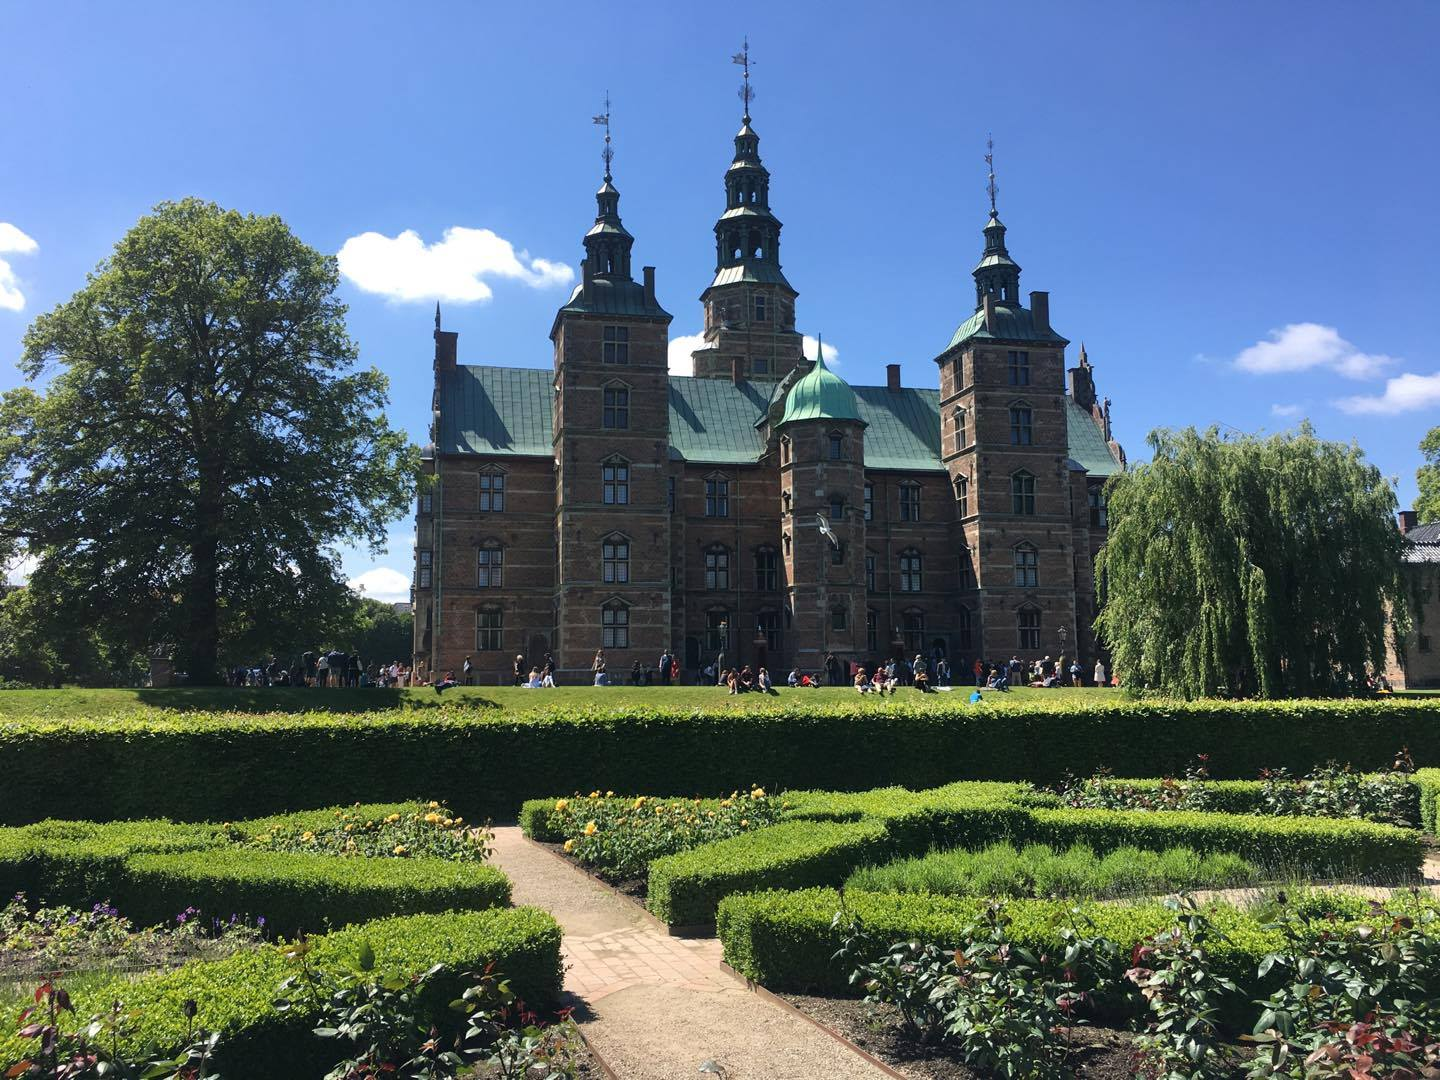 A view from the garden leading up to Rosenborg Castle. (MIRANDA POWERS/ THE OBSERVER)